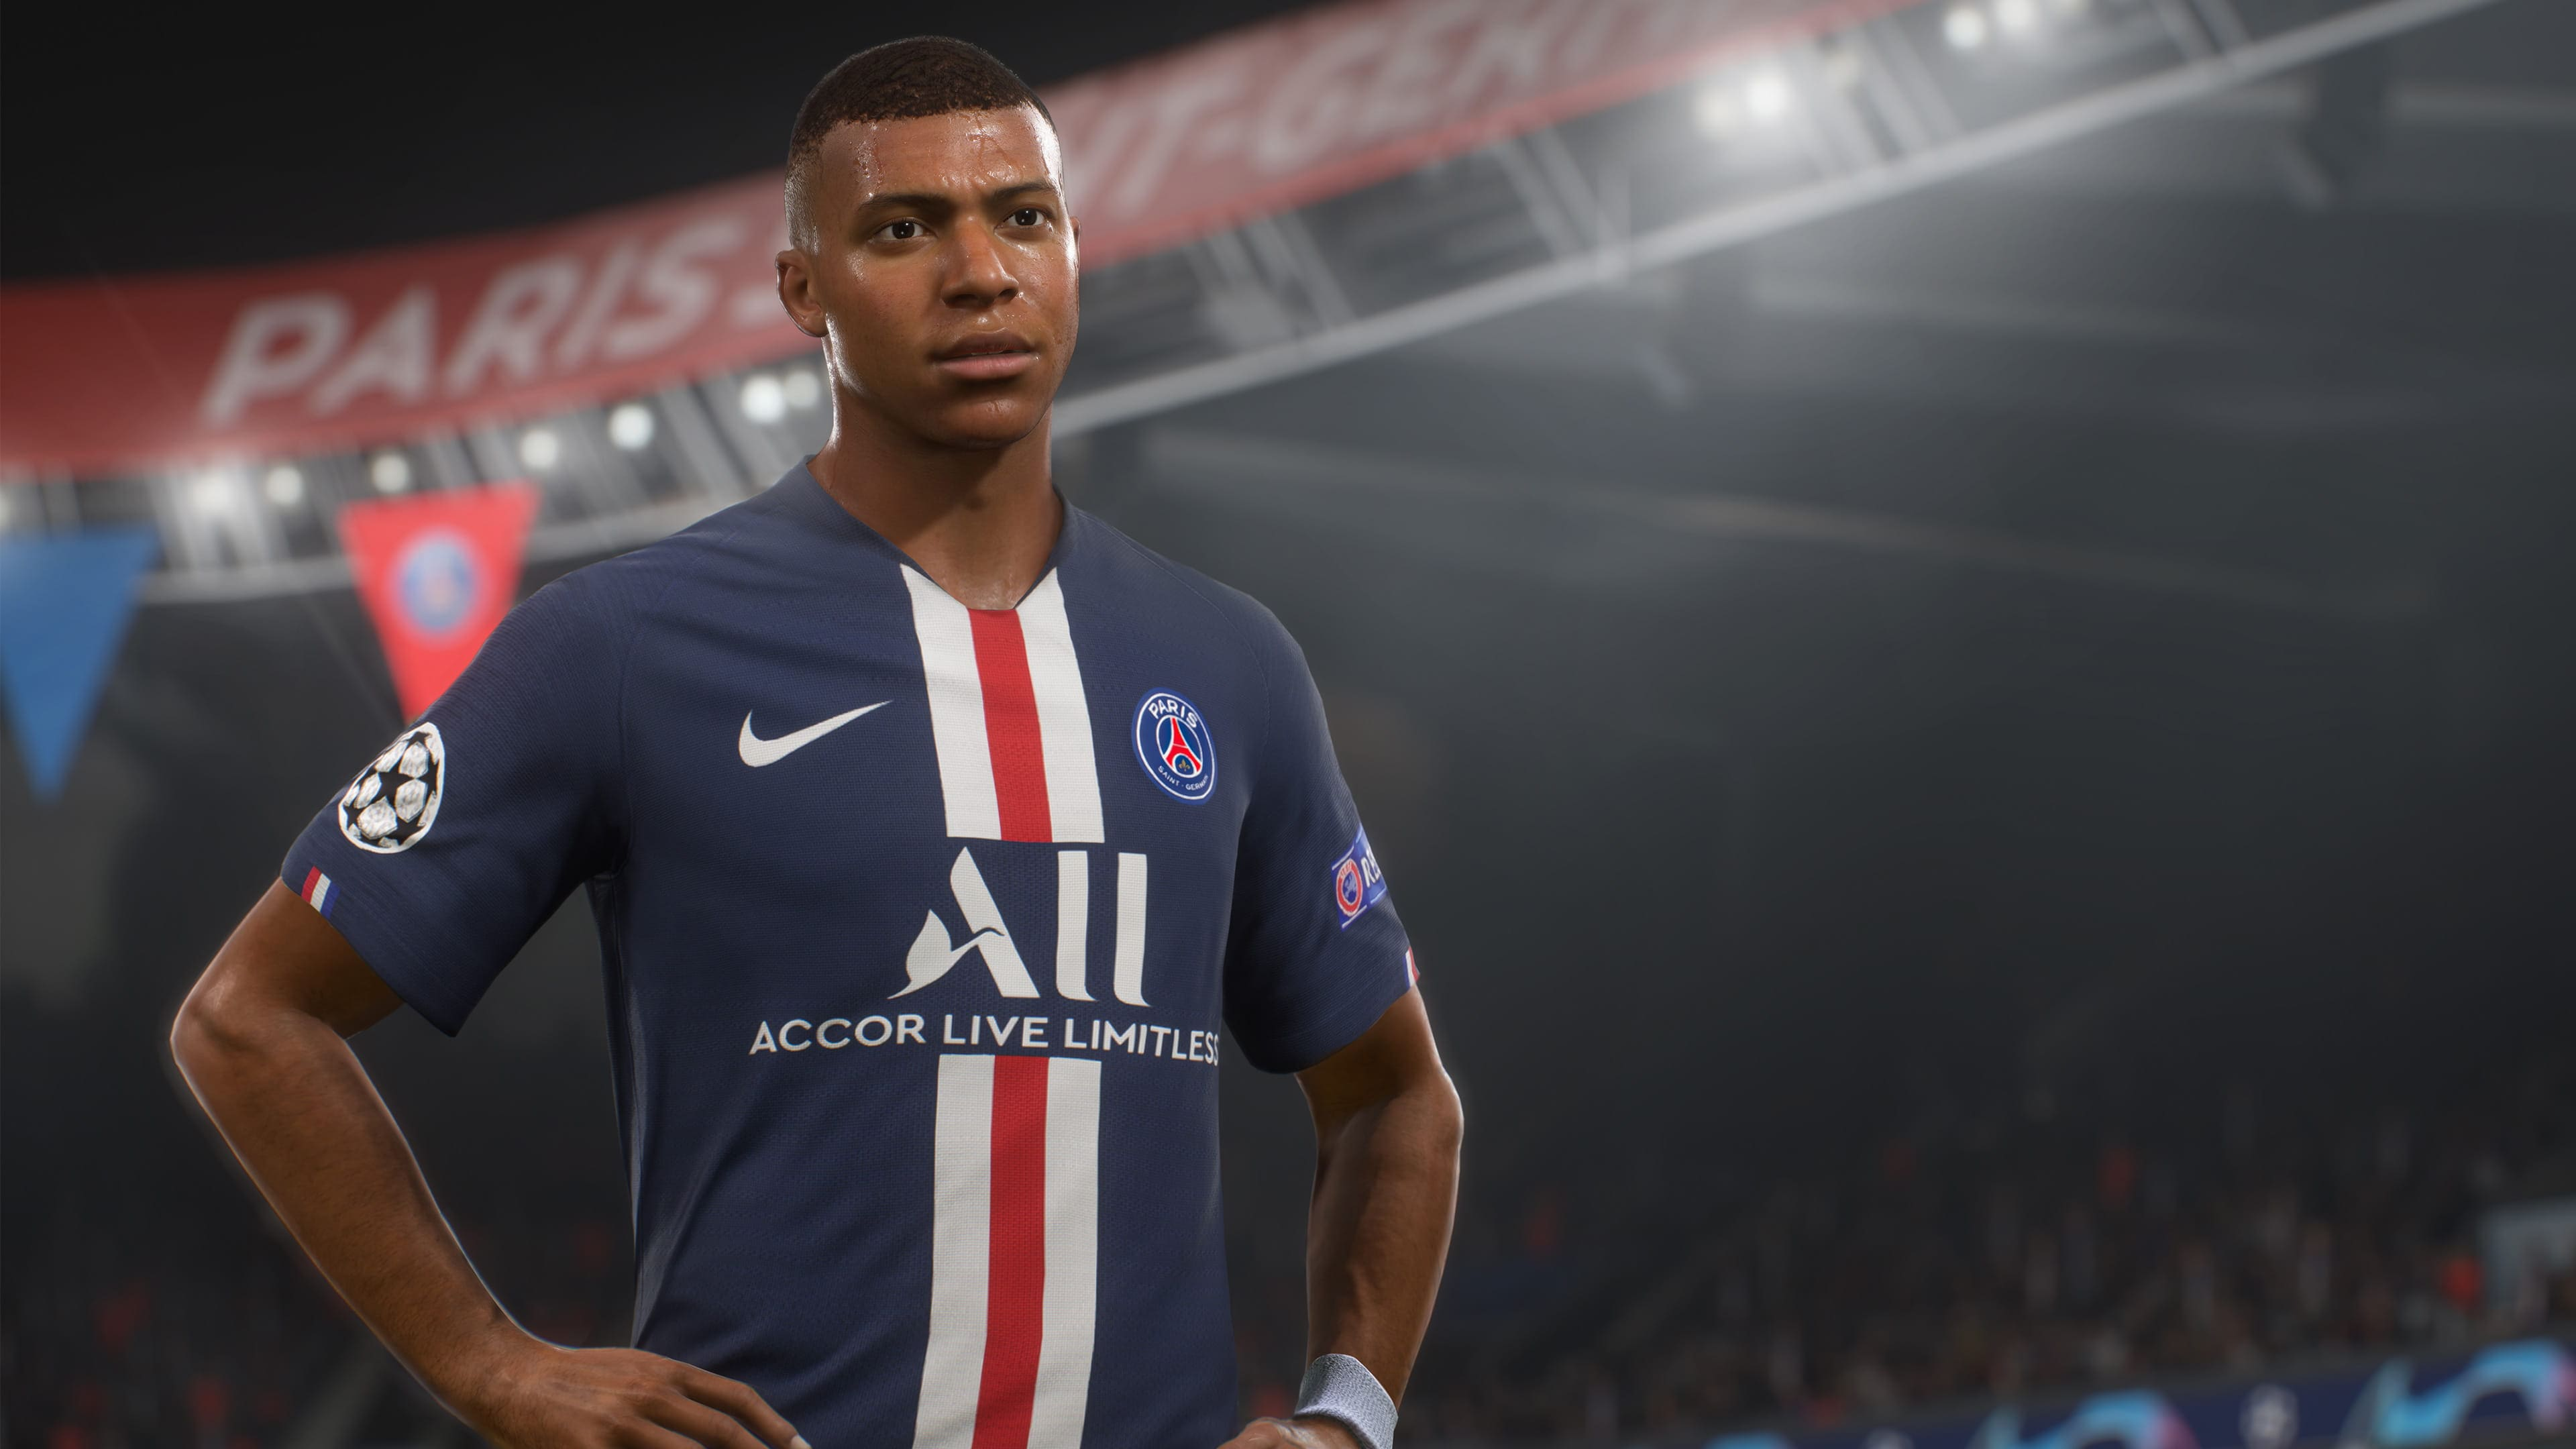 FIFA 21 Release Date, Price, Reveal Trailer Unveiled at EA Play 2020